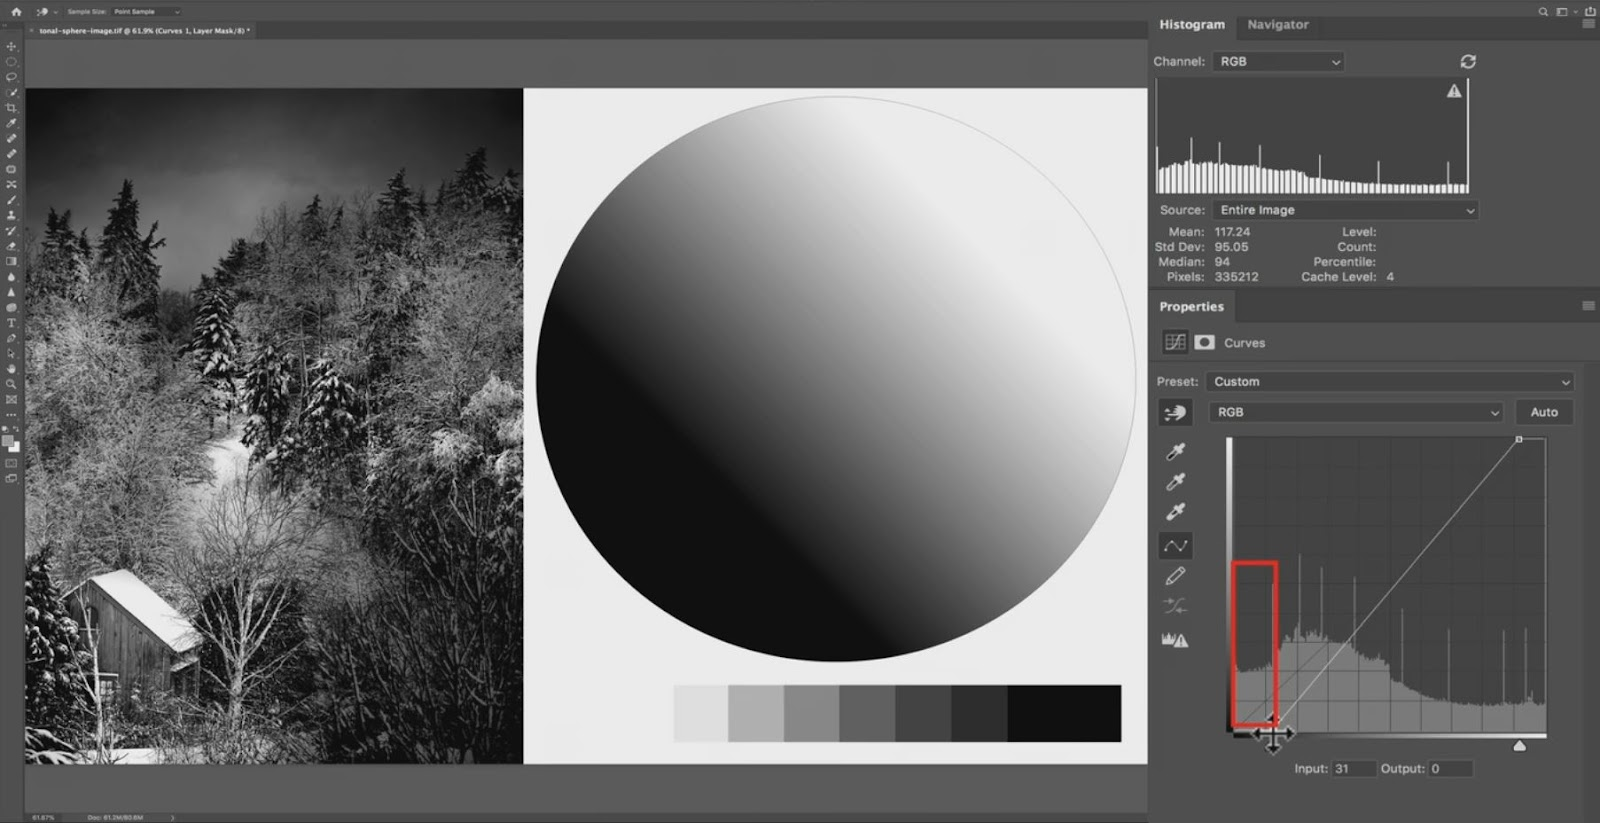 changing tones in the histogram